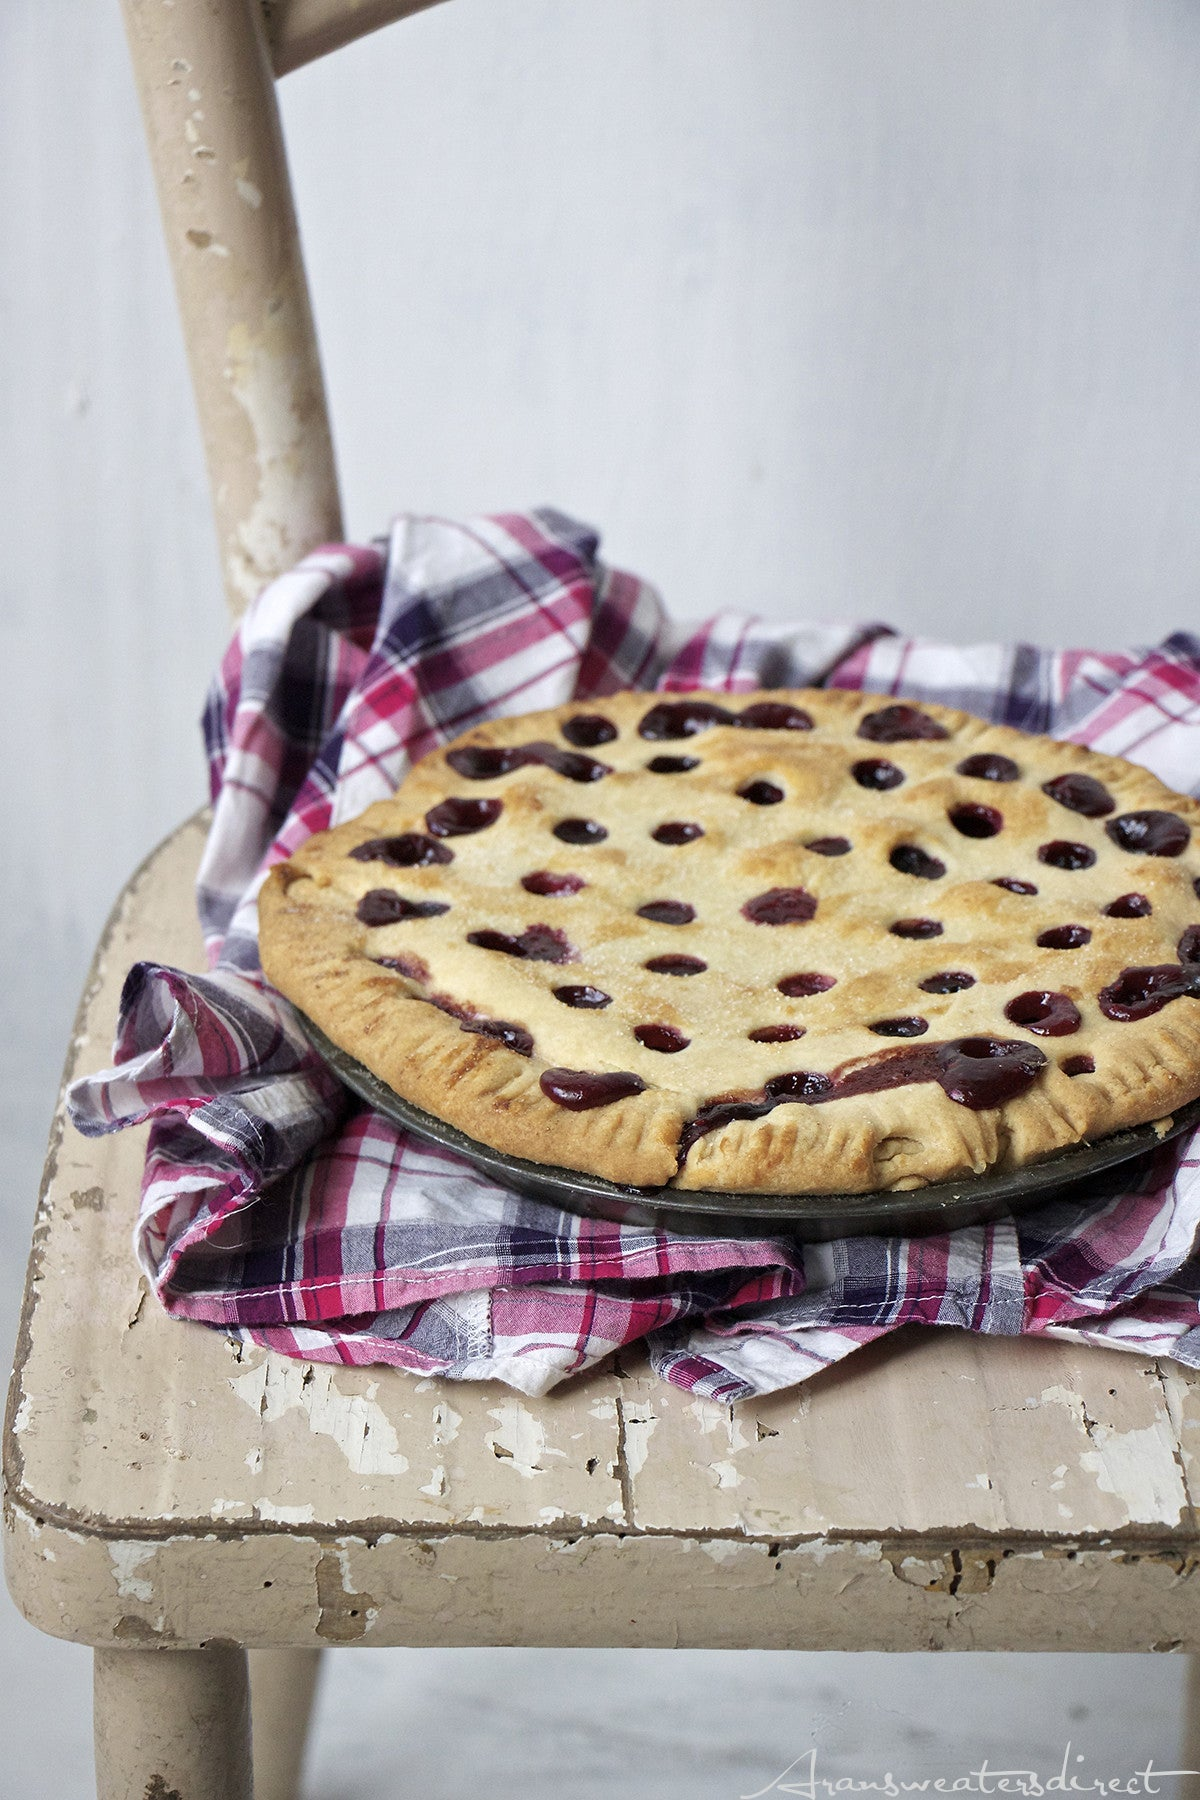 Our homemade bramble berry tart from berries we foraged in the Irish countryside. #baking #recipe #tart